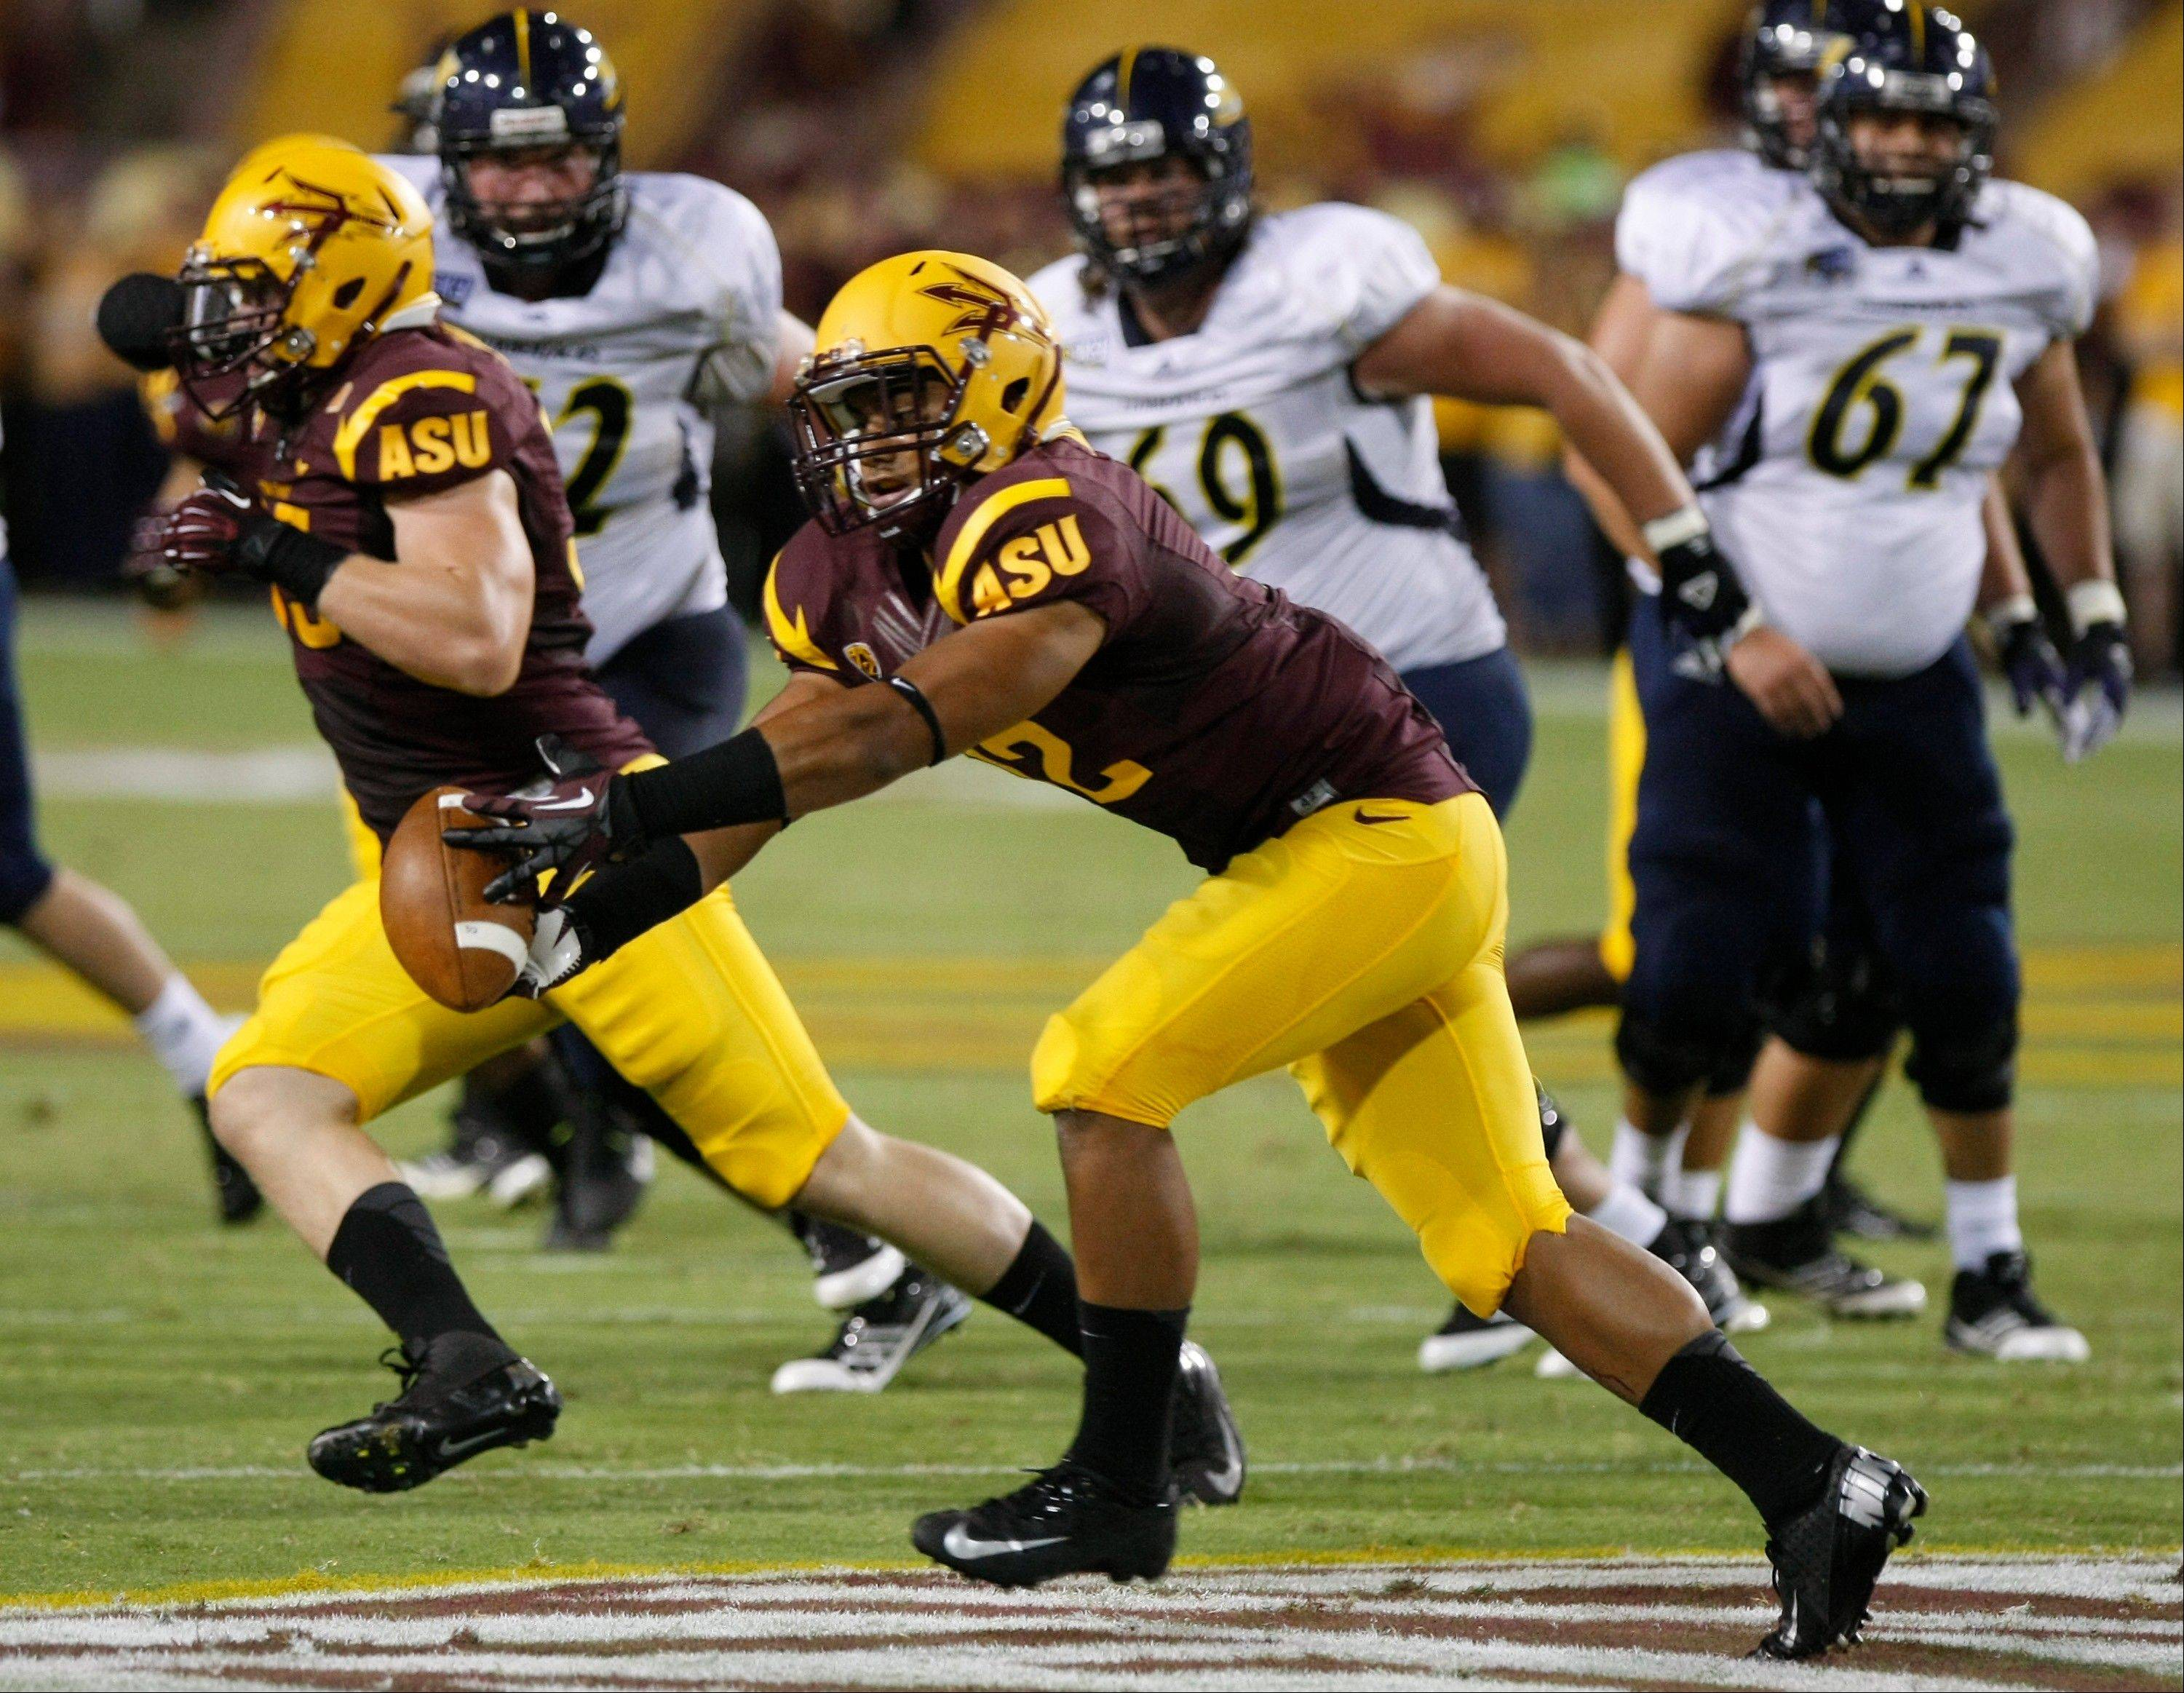 Arizona State safety Viliami Moeakiola intercepts a pass against the Northern Arizona during the first half Thursday in Tempe, Ariz.